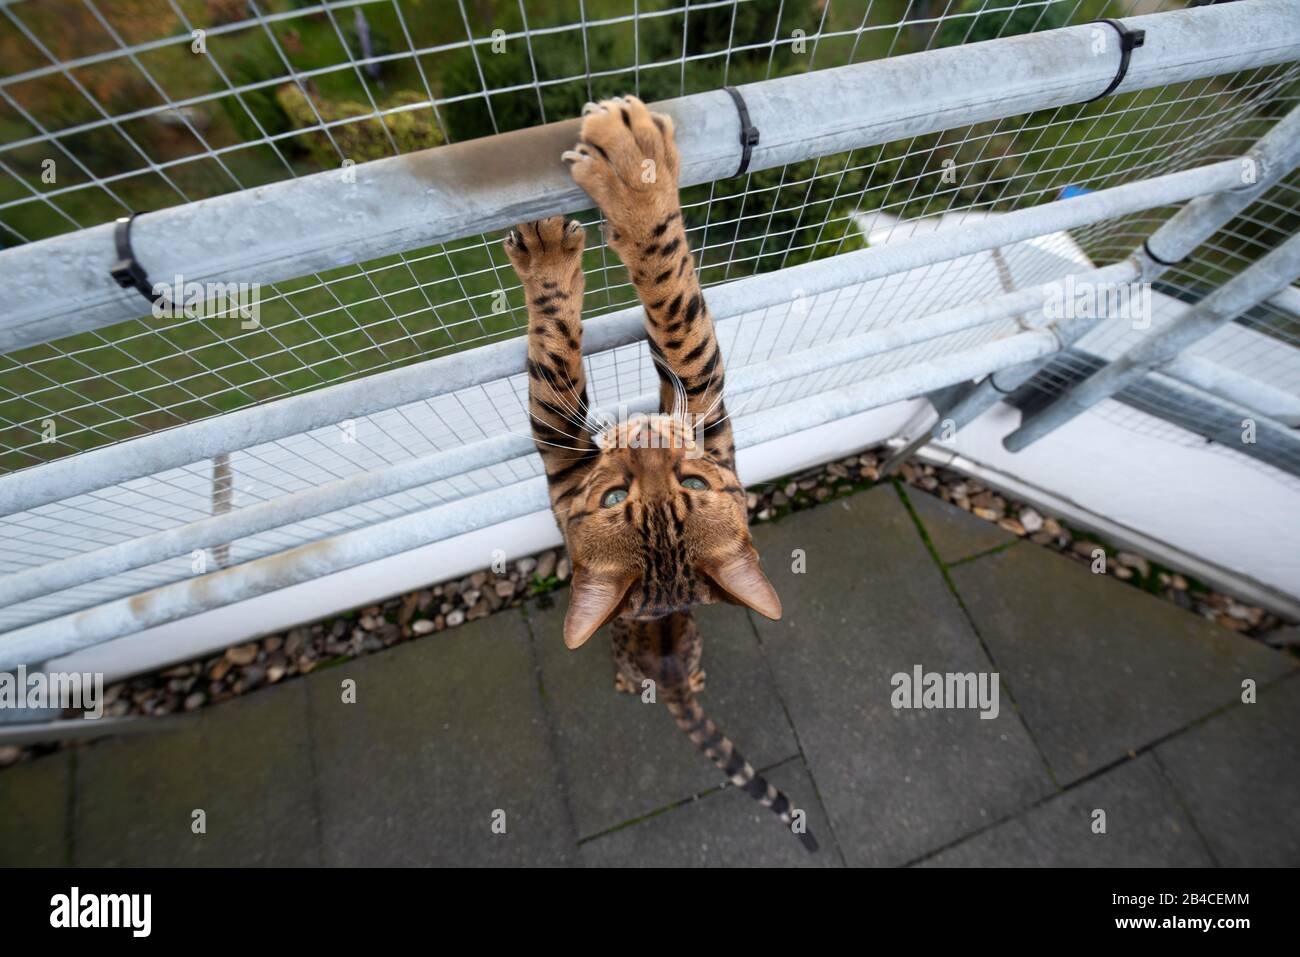 brown spotted tabby bengal cat outdoors on balcony with safety net climbing up railing Stock Photo